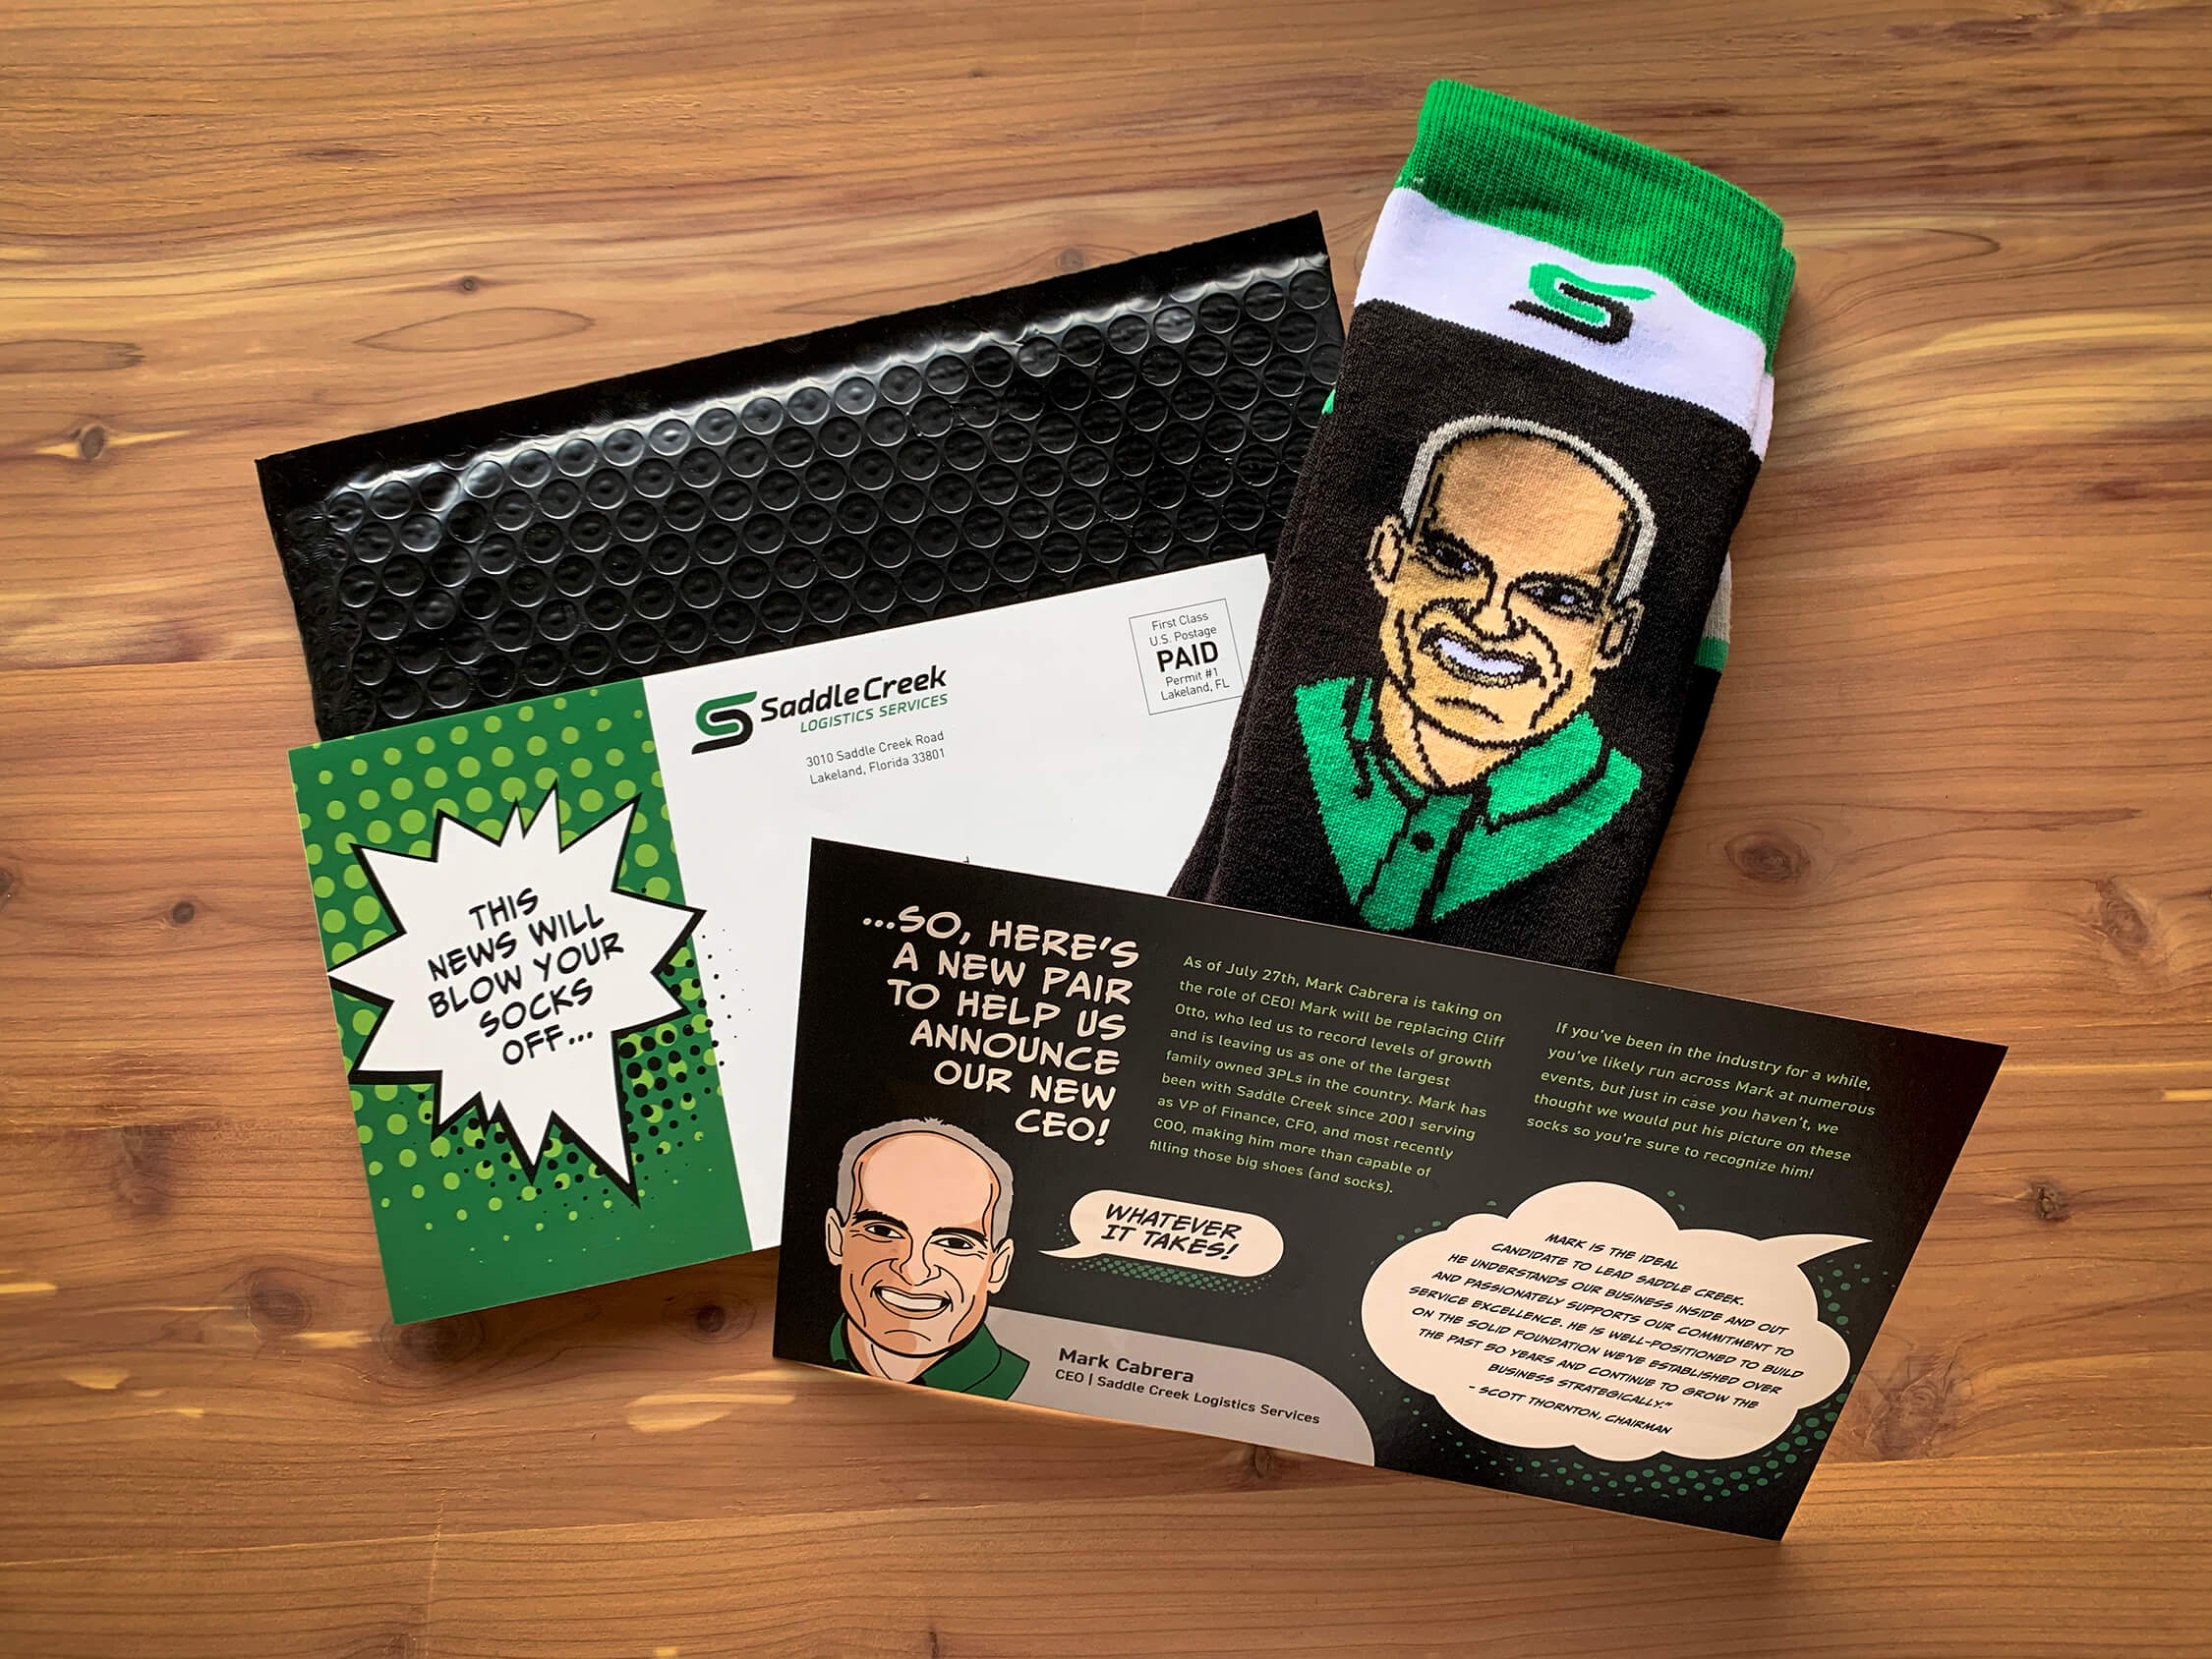 image of direct mail piece and custom socks